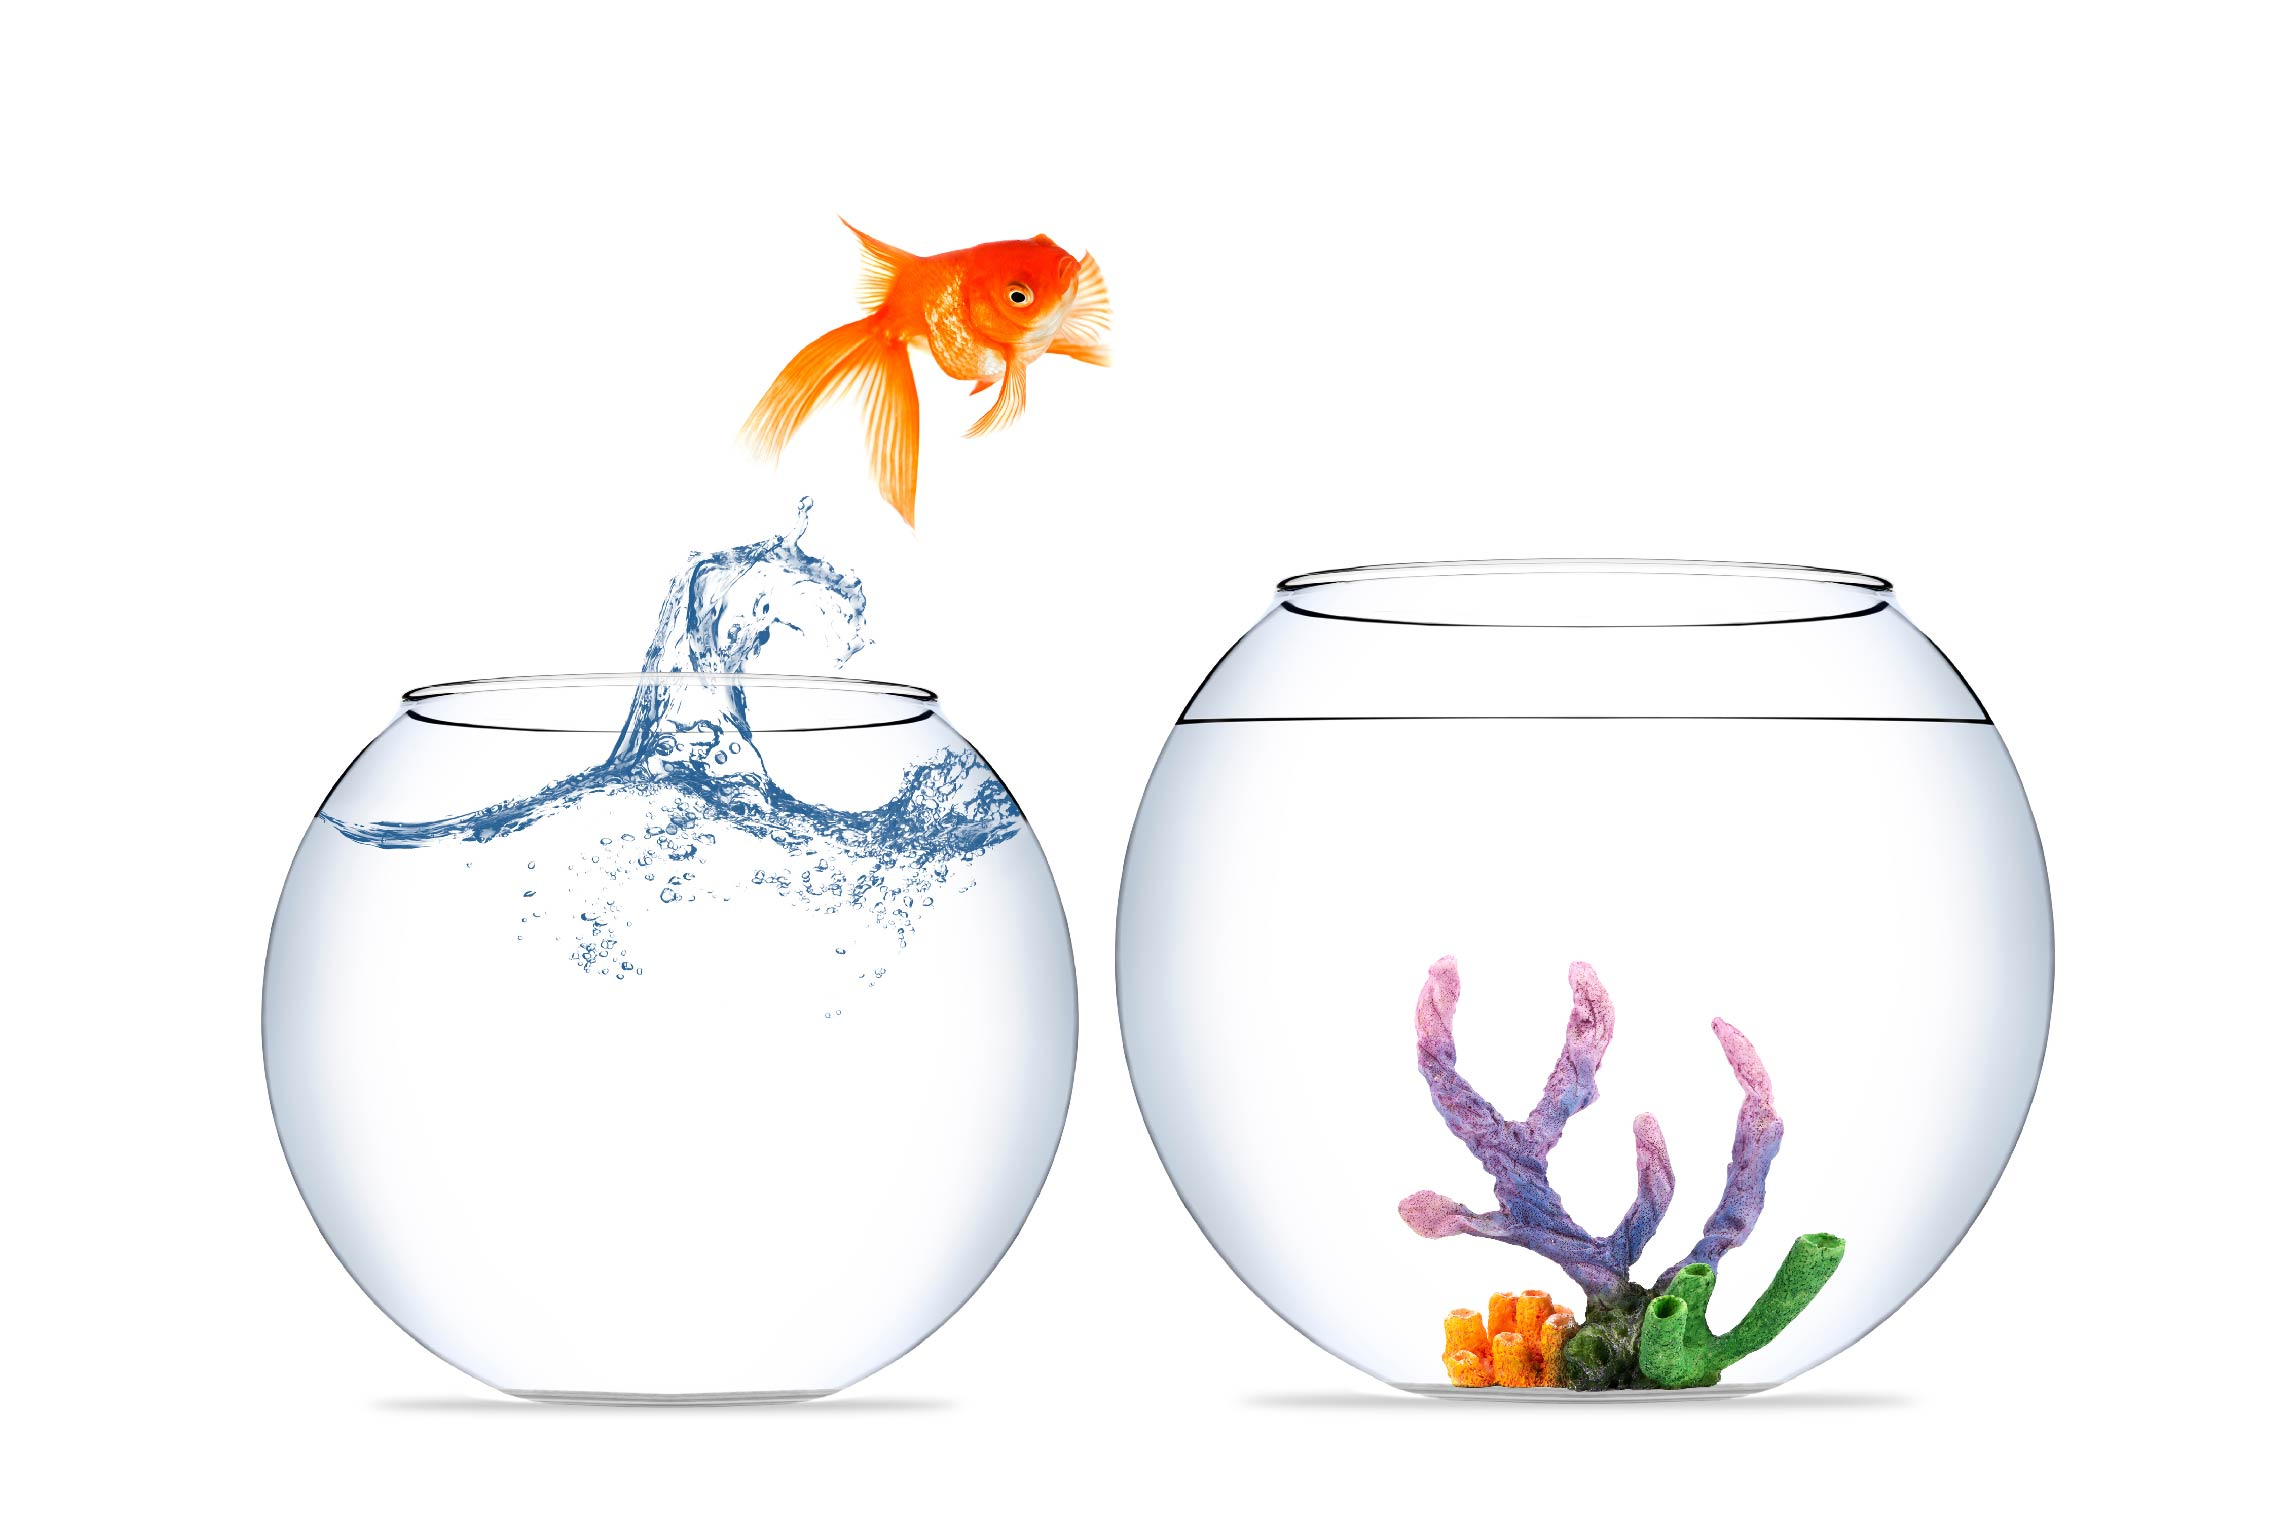 how to upgrade from google docs to nutshell goldfish jumping out of bowl